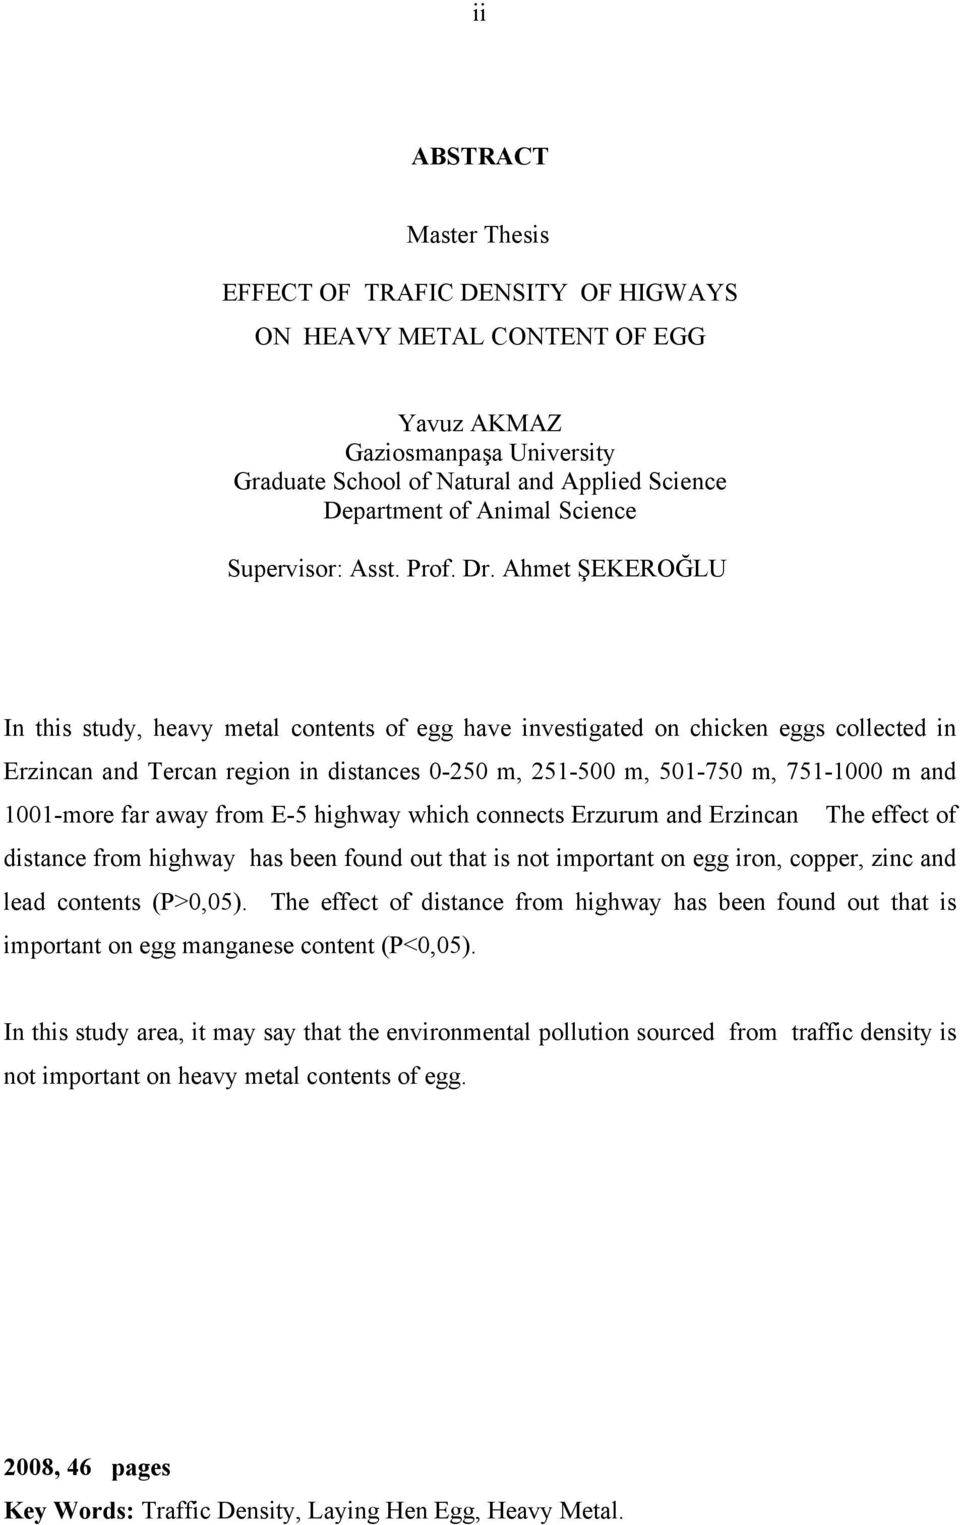 Ahmet ŞEKEROĞLU In this study, heavy metal contents of egg have investigated on chicken eggs collected in Erzincan and Tercan region in distances 0-250 m, 251-500 m, 501-750 m, 751-1000 m and